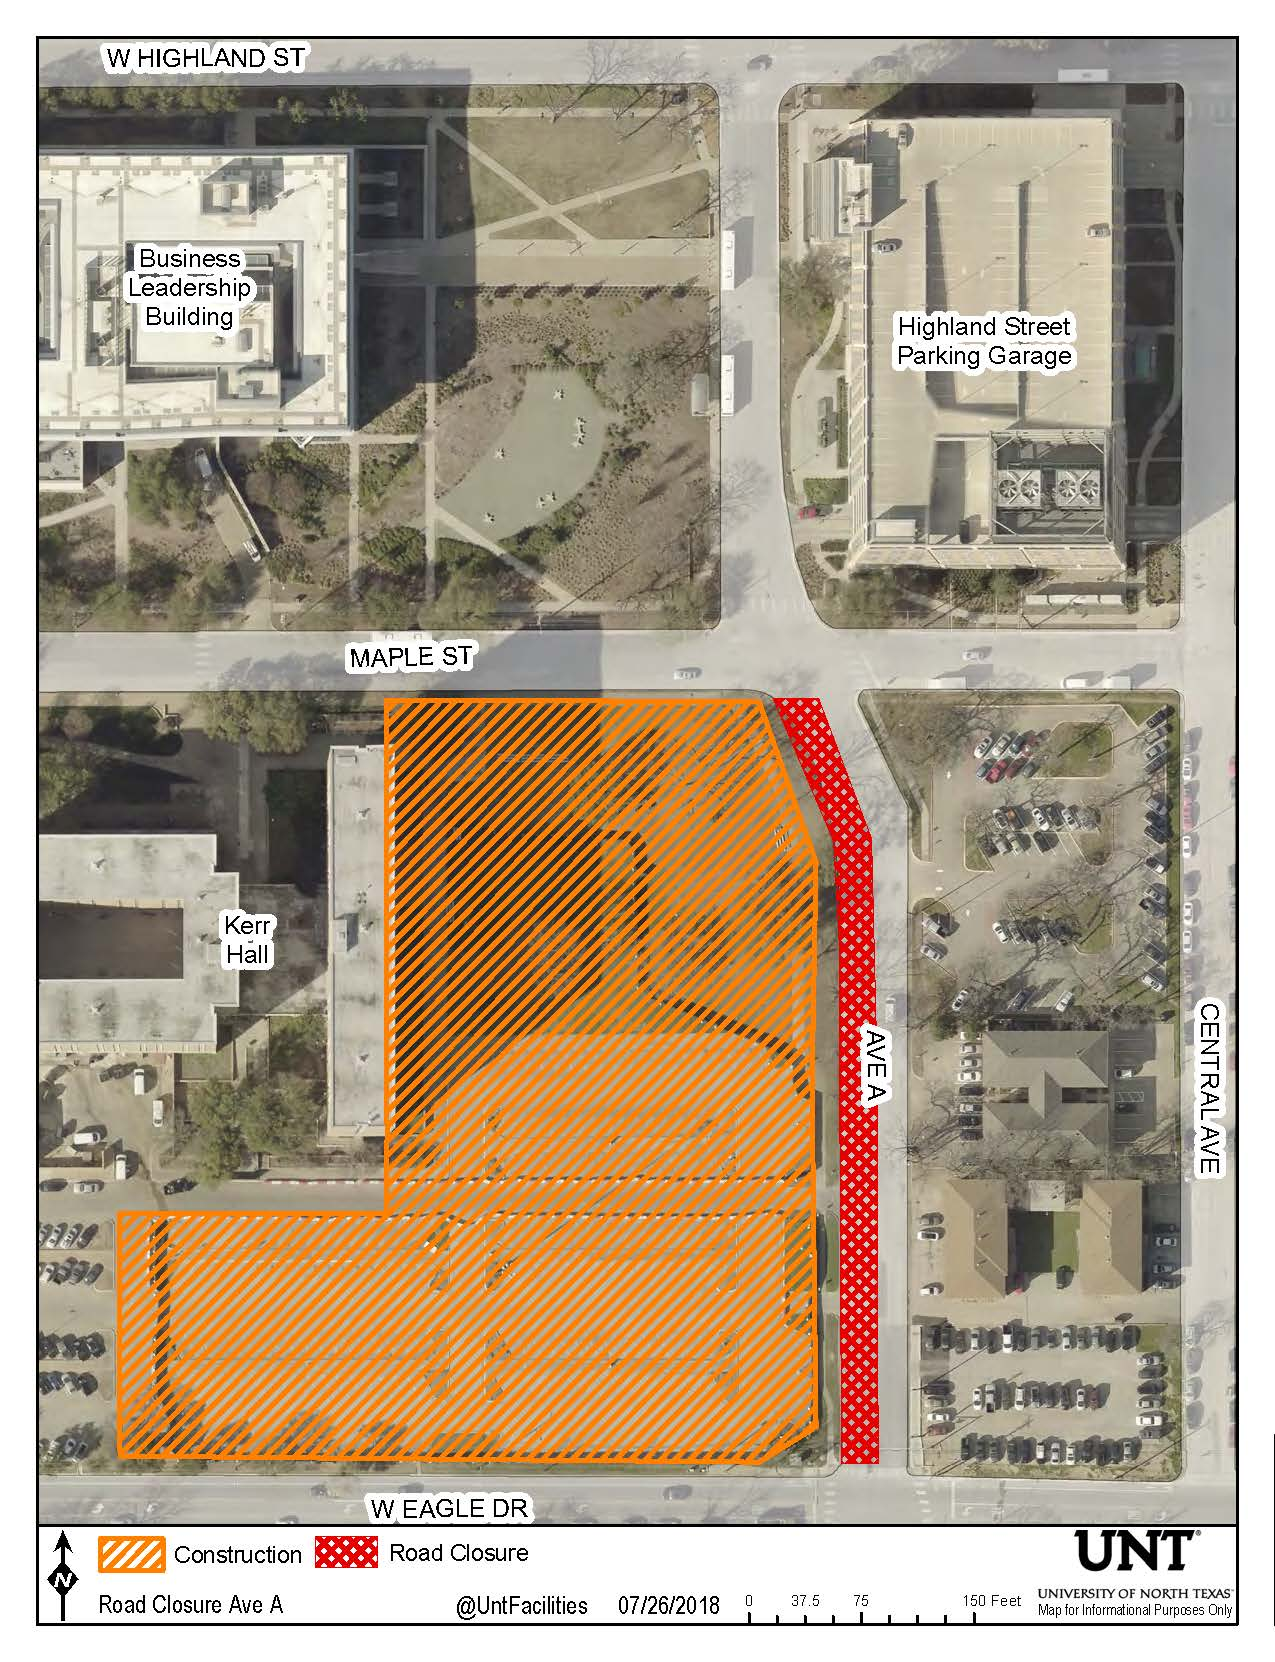 Map depicting construction area to the southeast of Kerr Hall and the Ave A southbound lane closure